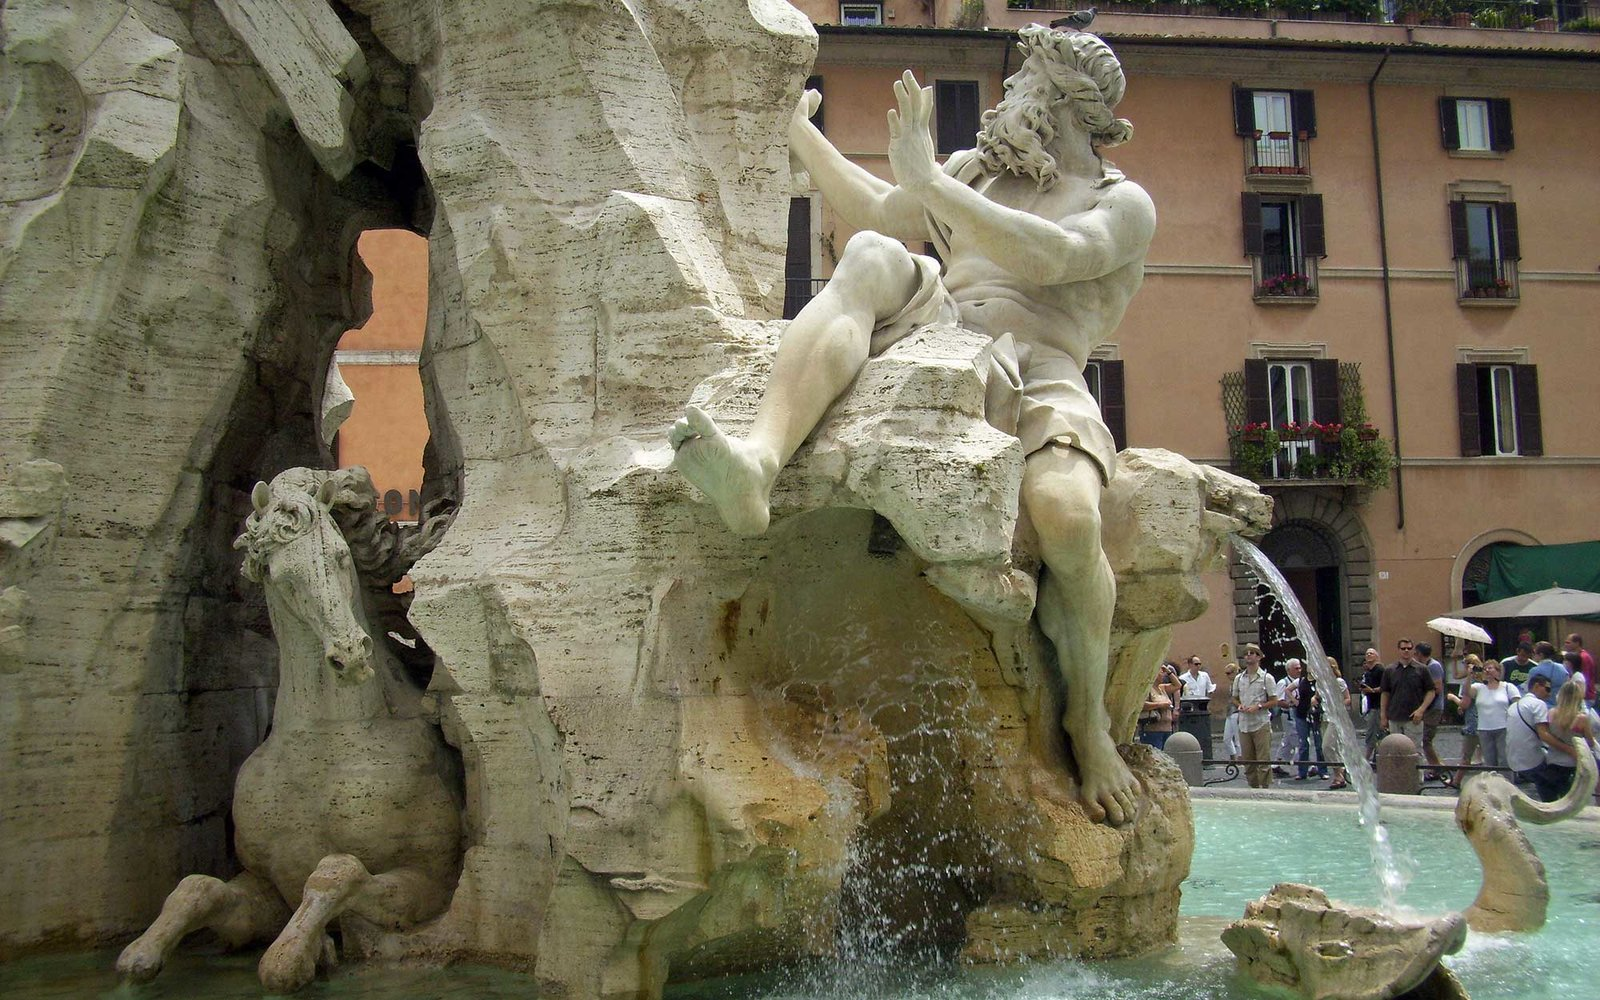 Fountain of the Four Rivers, Rome, Italy